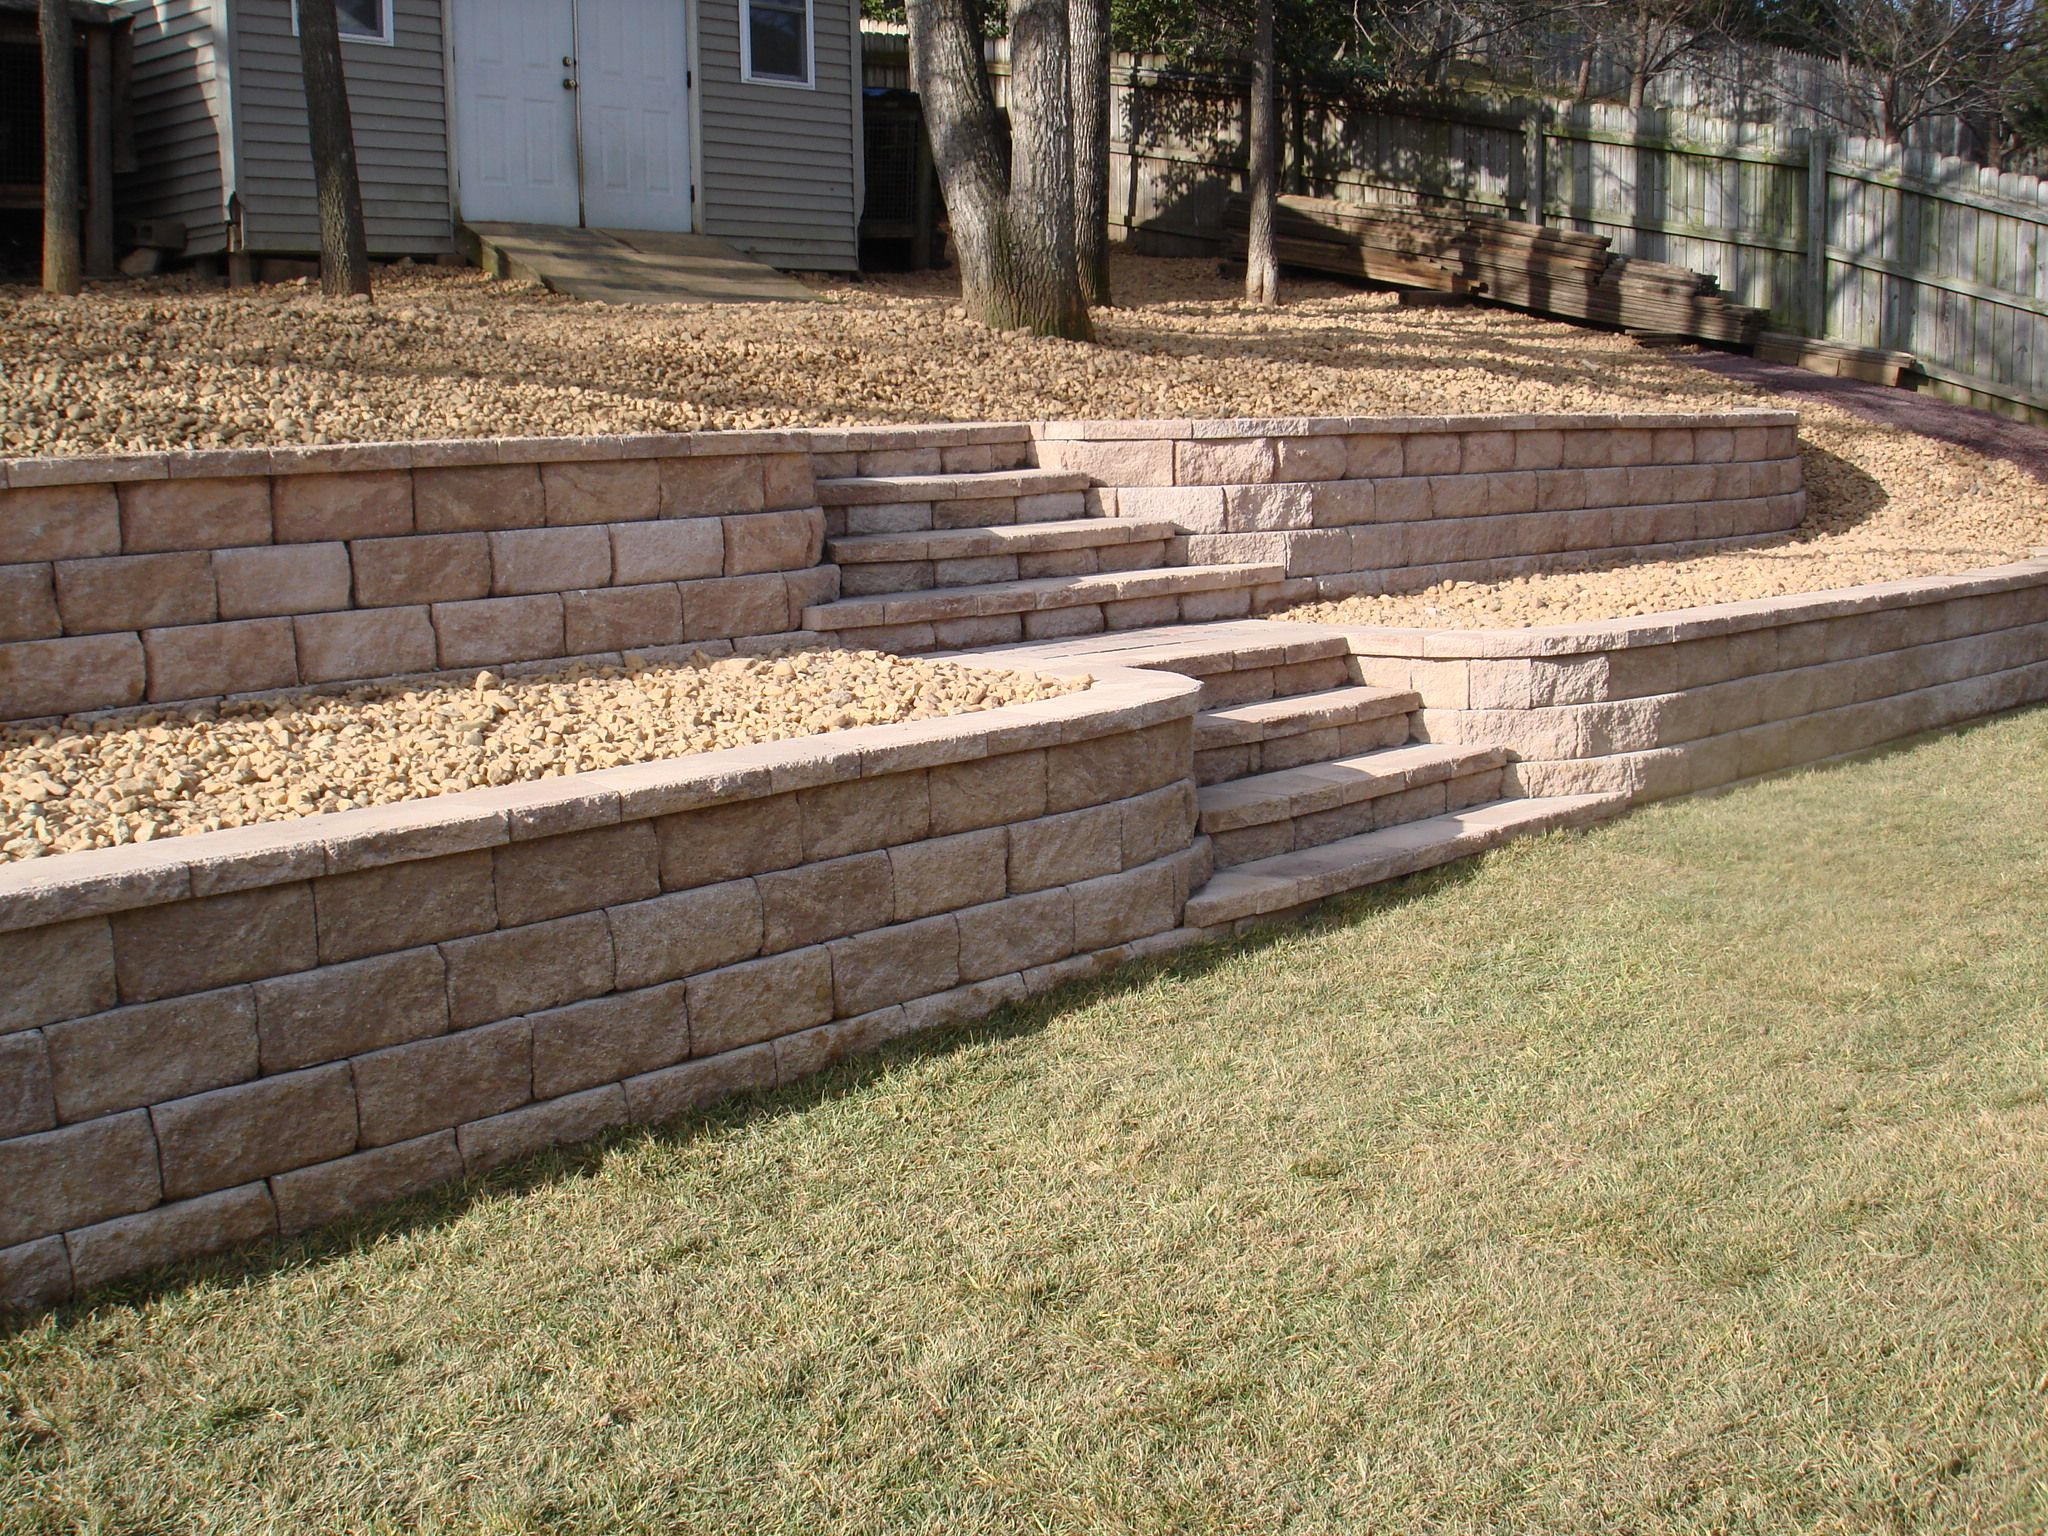 Tiered Garden wall with stairs plans for the backyard near course